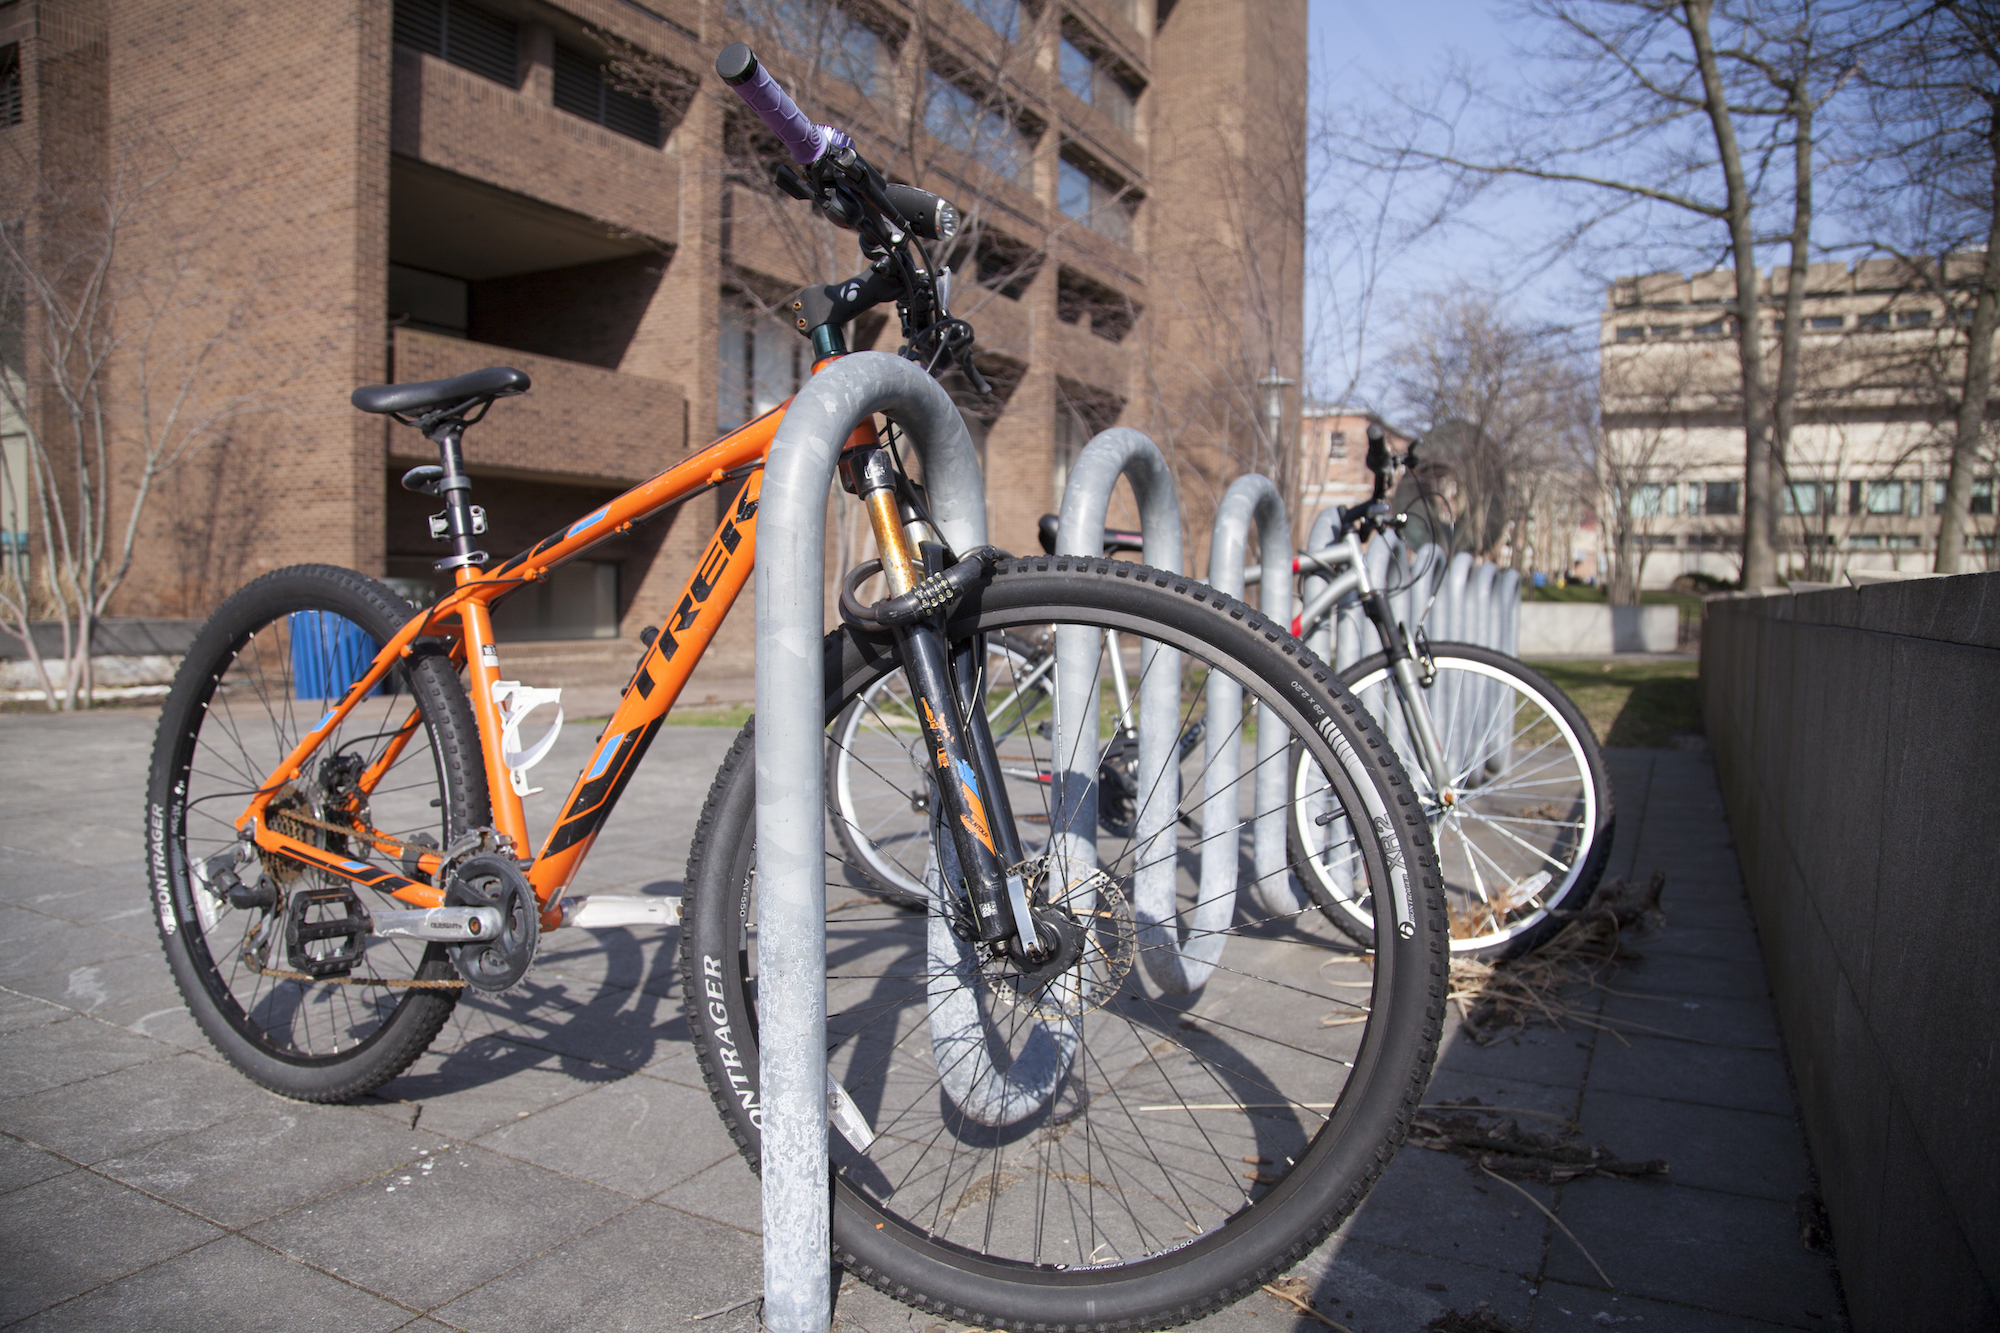 Why we need to bike more around campus